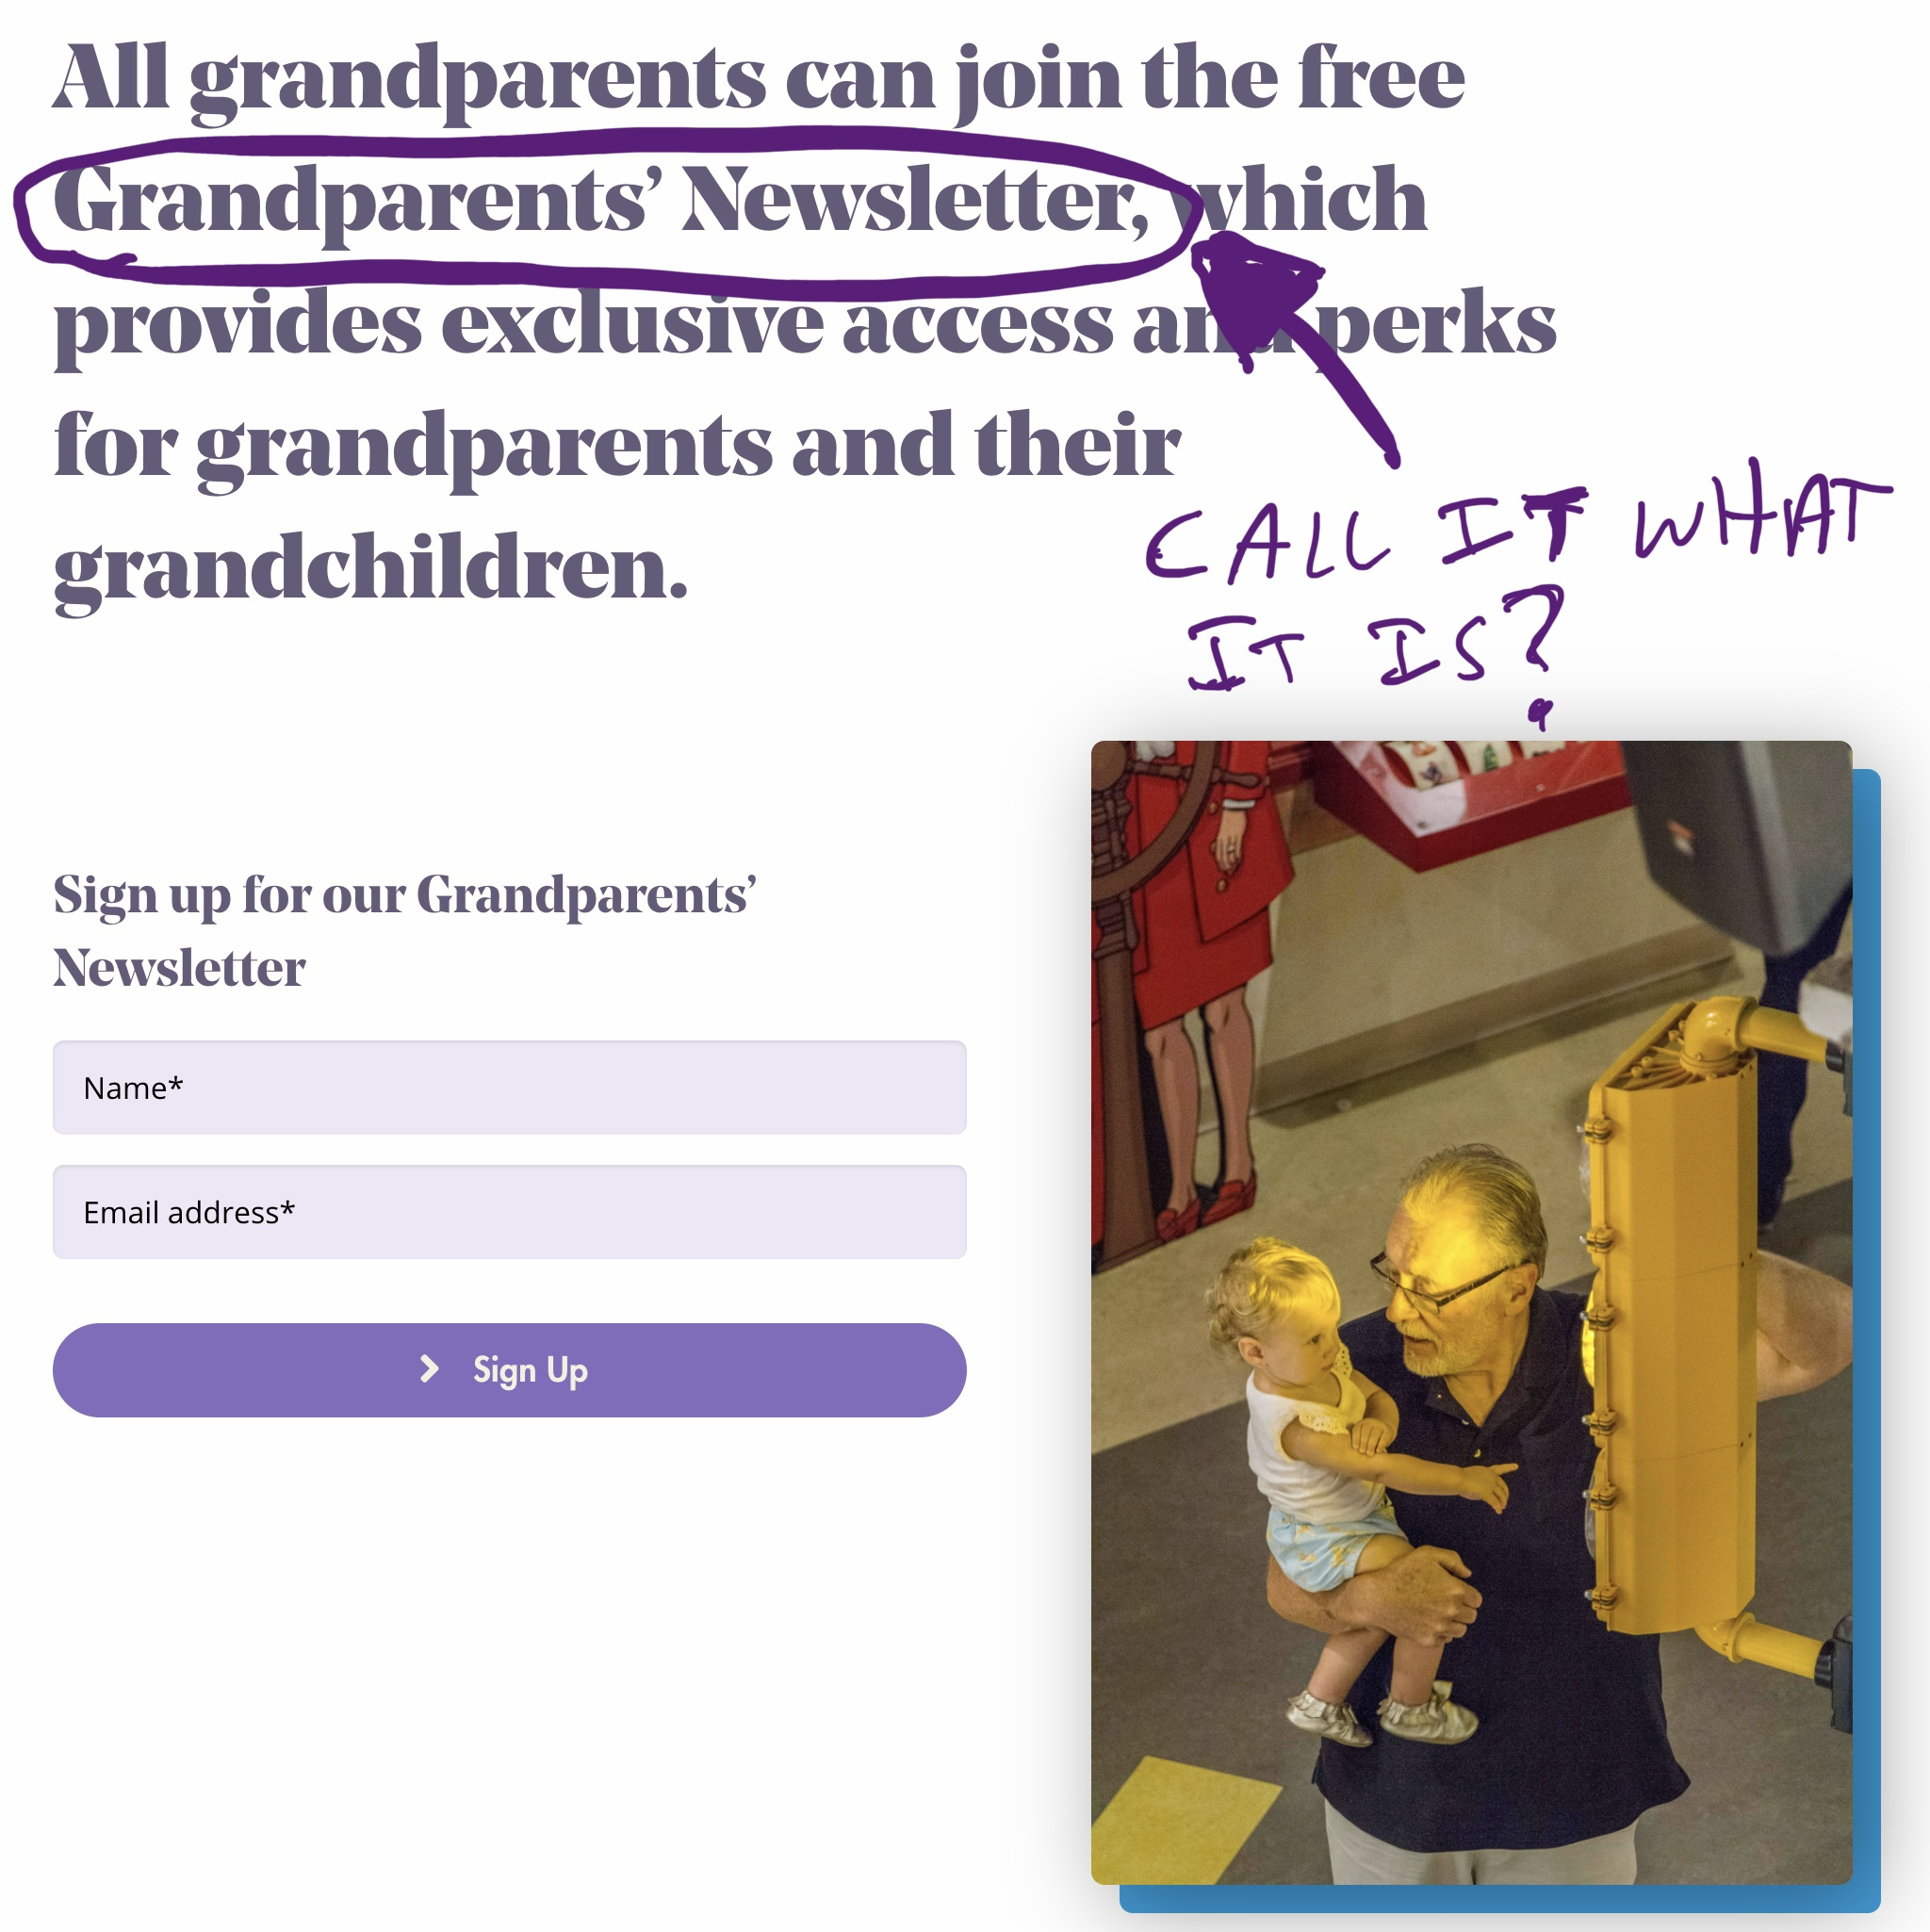 The grandparents' page consists of a headline and sign-up form for a grandparents' newsletter